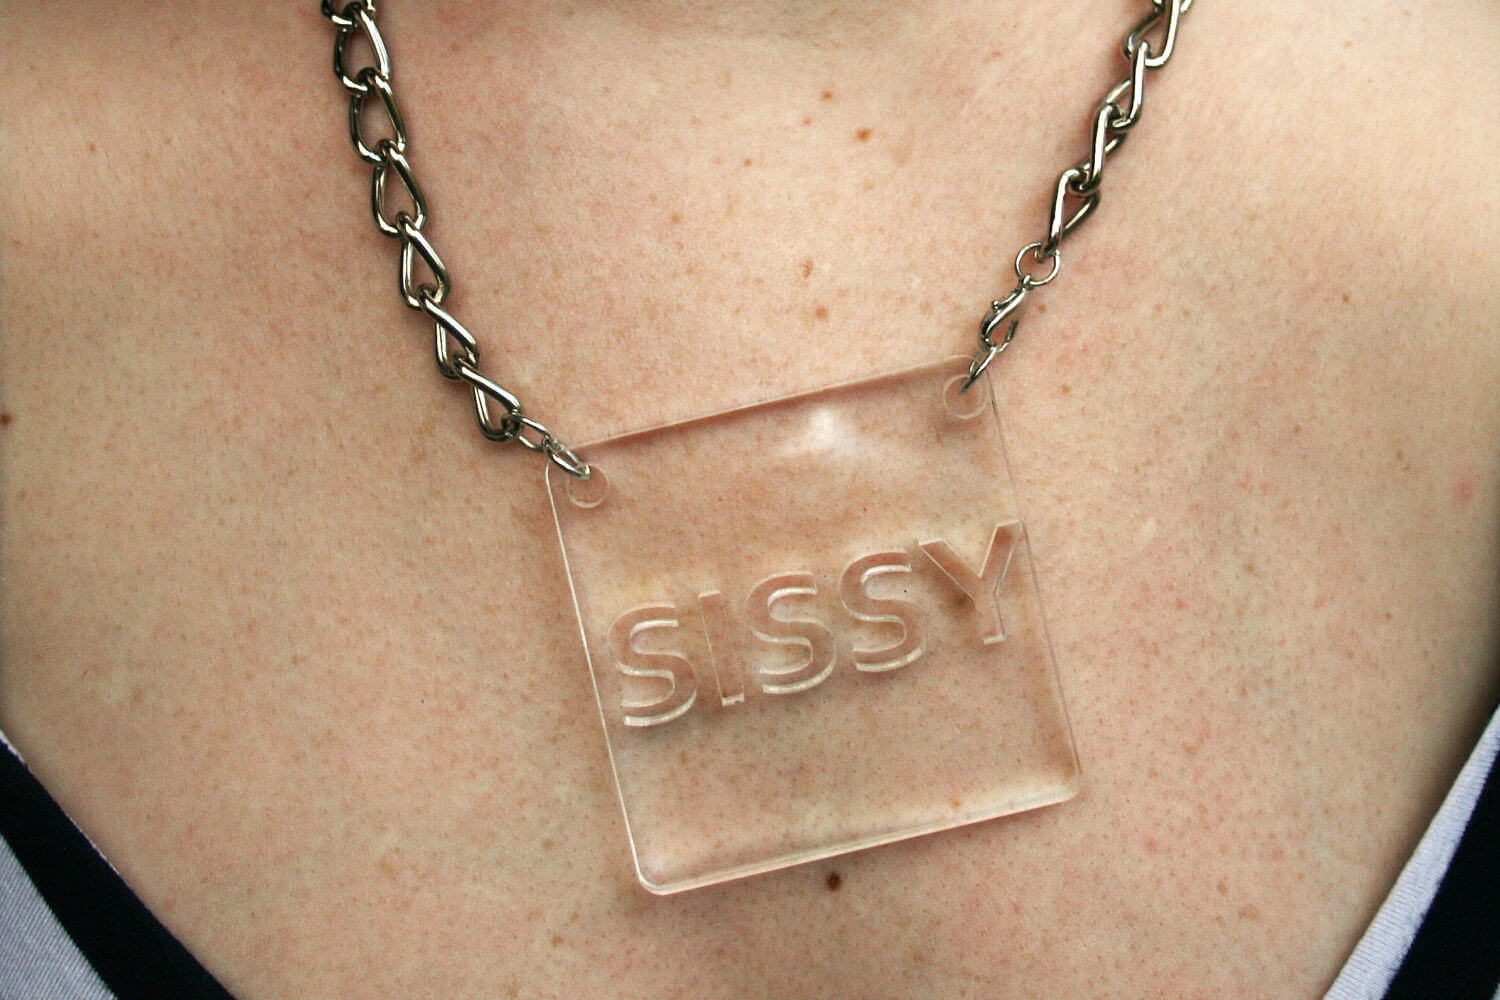 Sissy square pendant necklace steer queer sissy square pendant necklace aloadofball Images